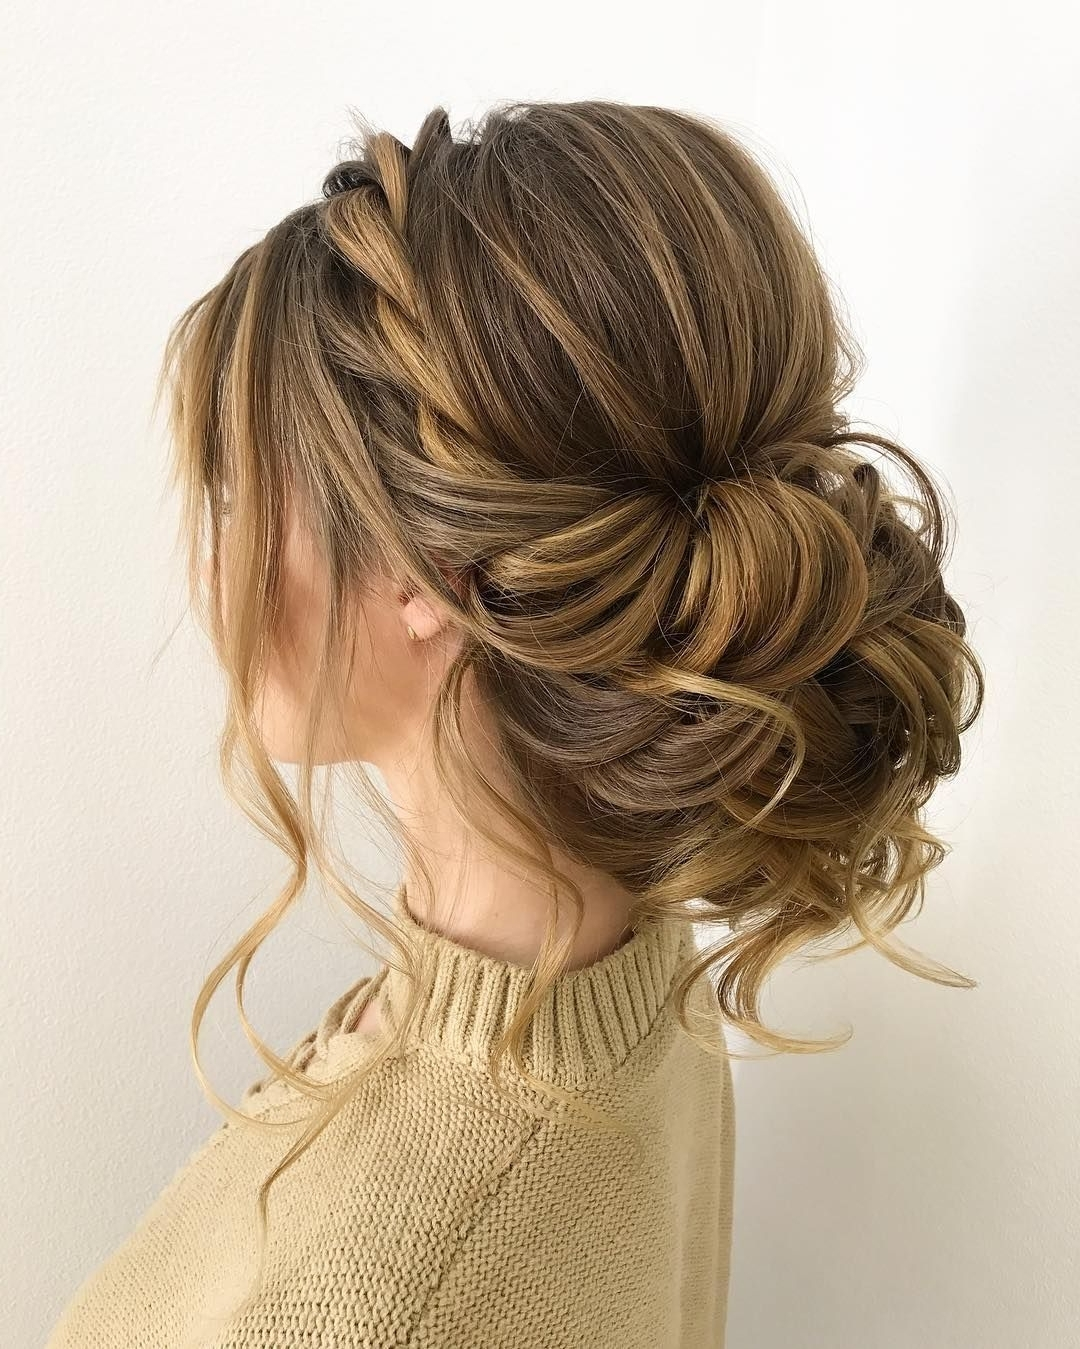 Gorgeous Wedding Updo Hairstyles That Will Wow Your Big Day For Updo Hairstyles For Wedding (View 8 of 15)